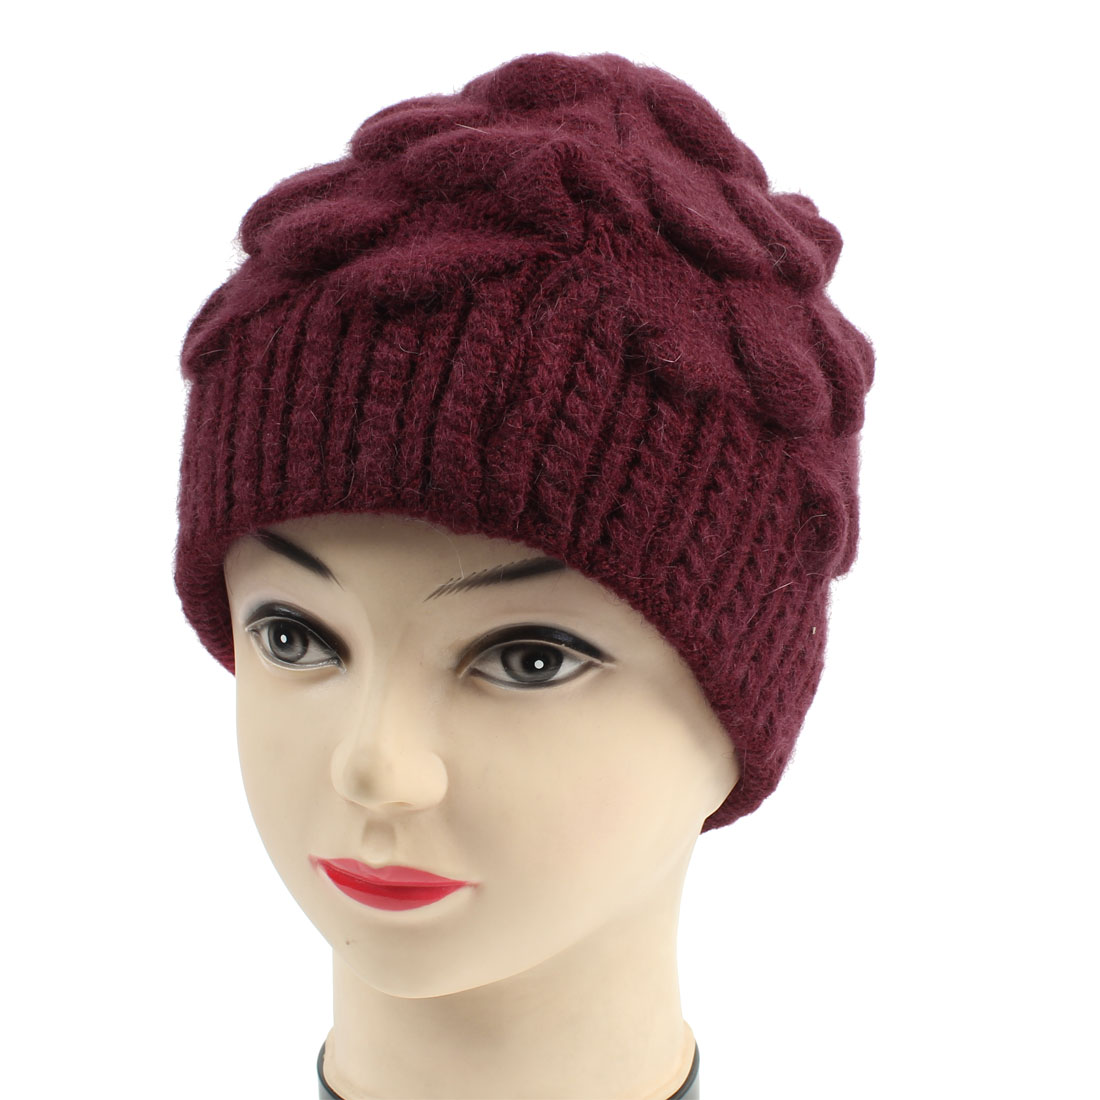 Winter Warm Burgundy Ribbed Knitted Pineapple Hat Beanie Cap for Ladies